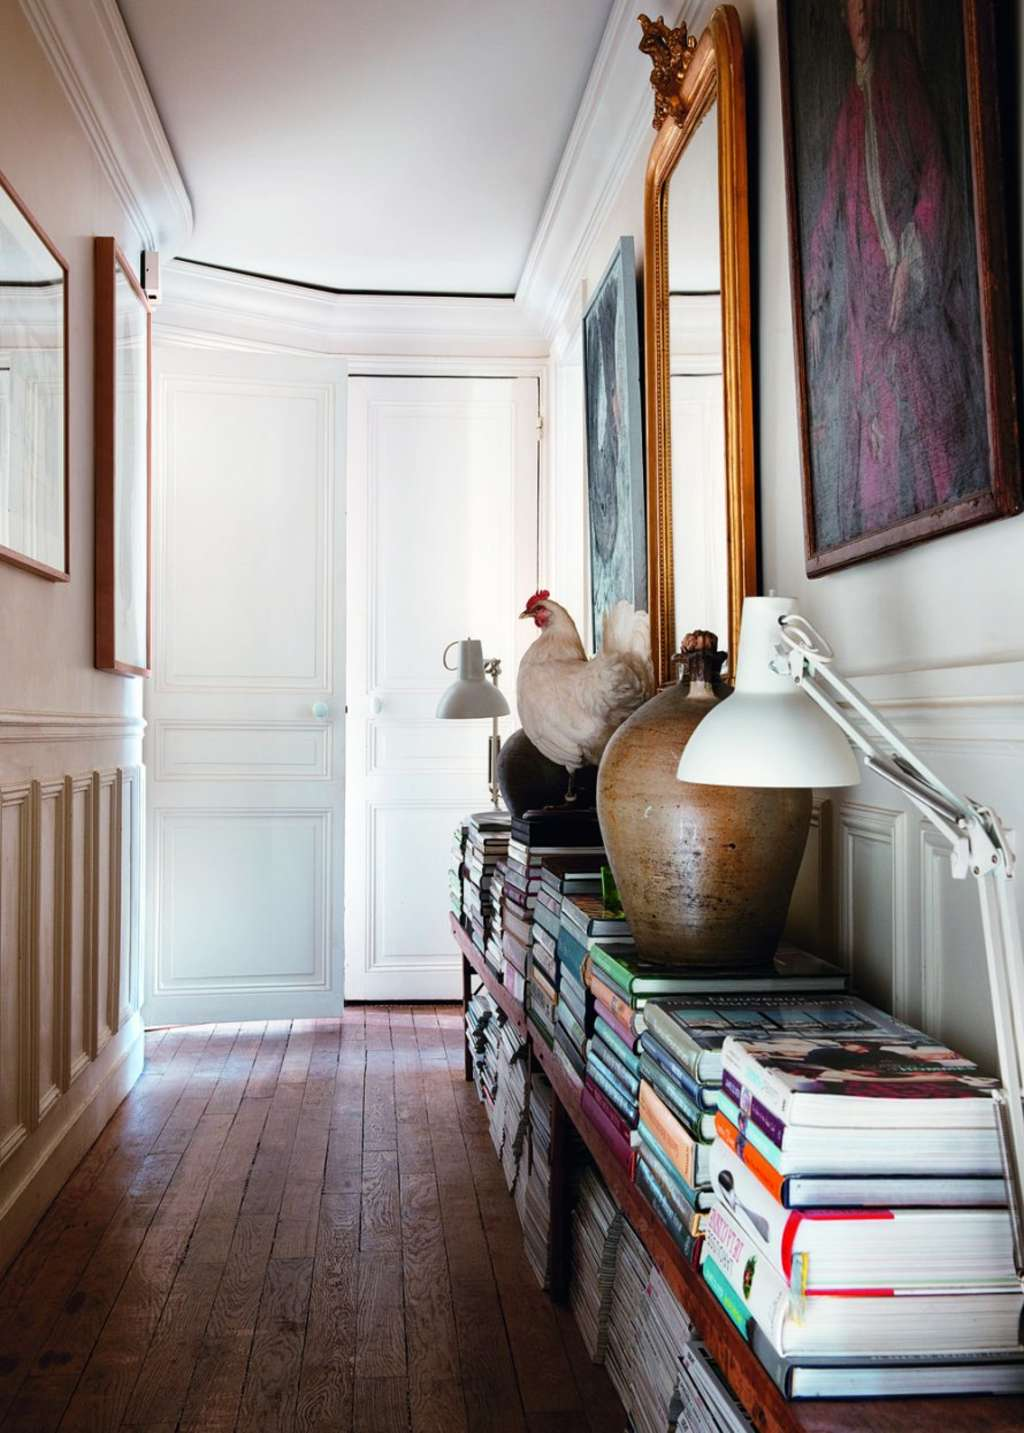 This Overlooked Space in Your Home Deserves Attention